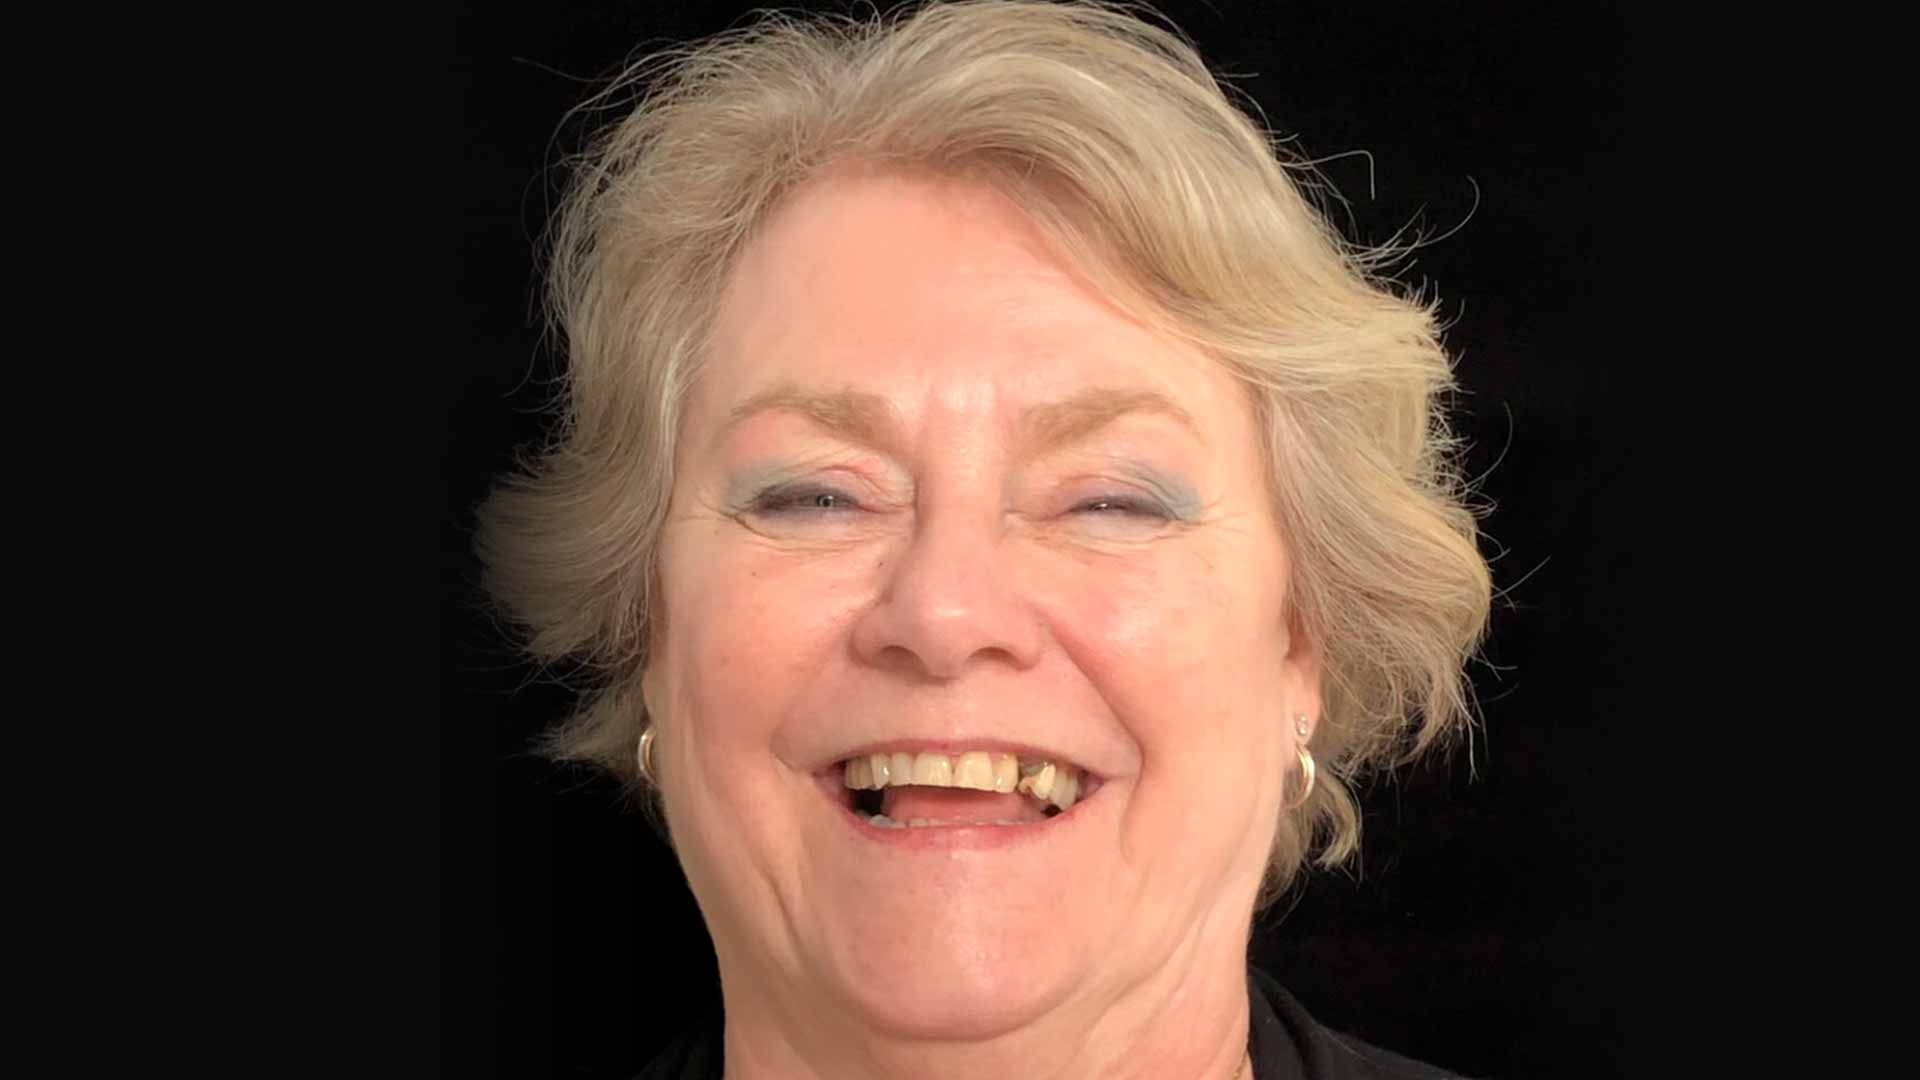 A close-up of an older woman smiling to show her teeth before having dental implants.